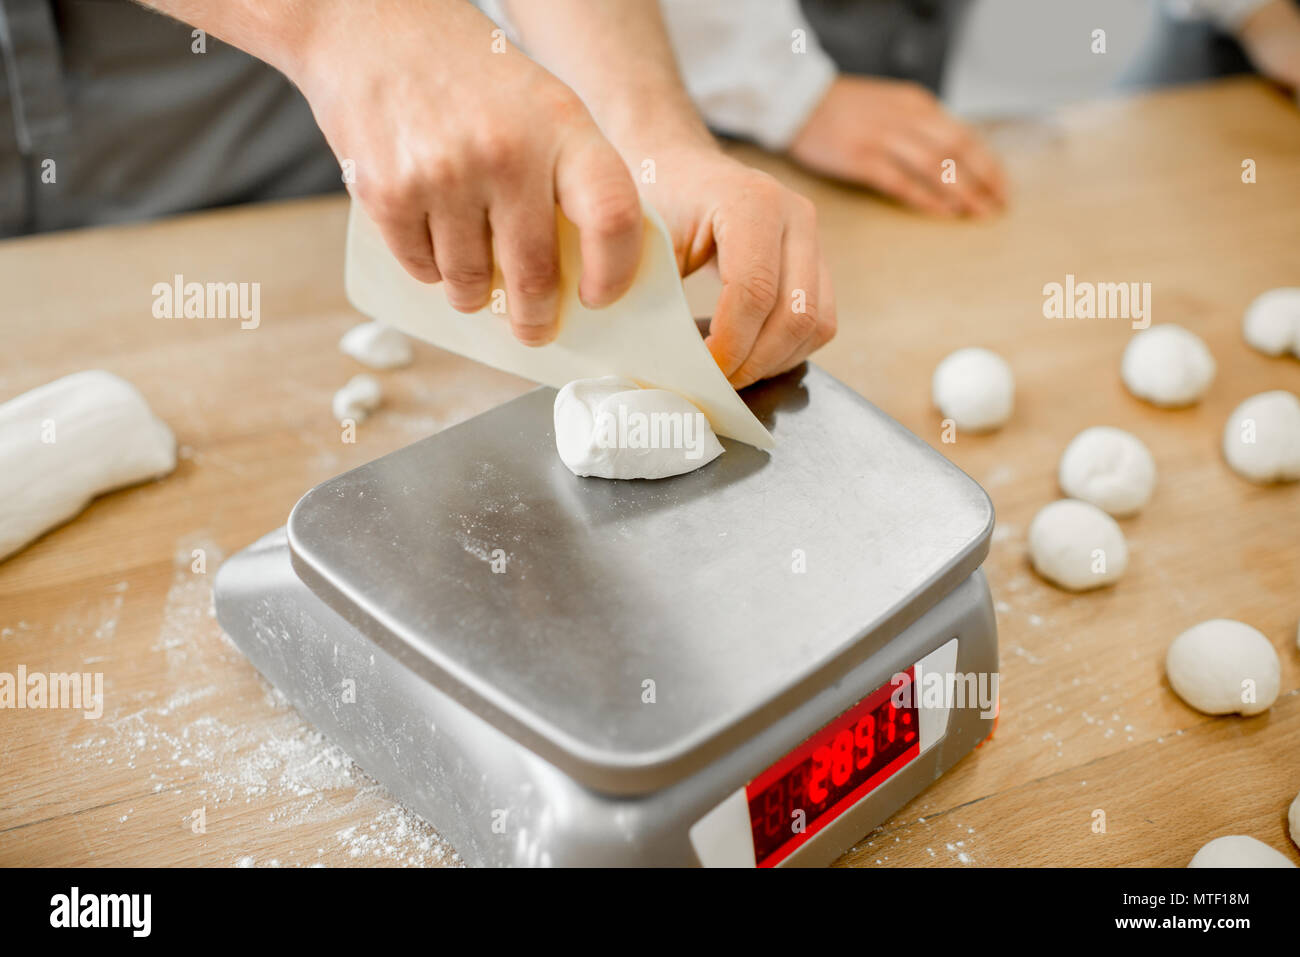 Baker weighing dough portions for baking buns at the manufacturig, close-up view - Stock Image